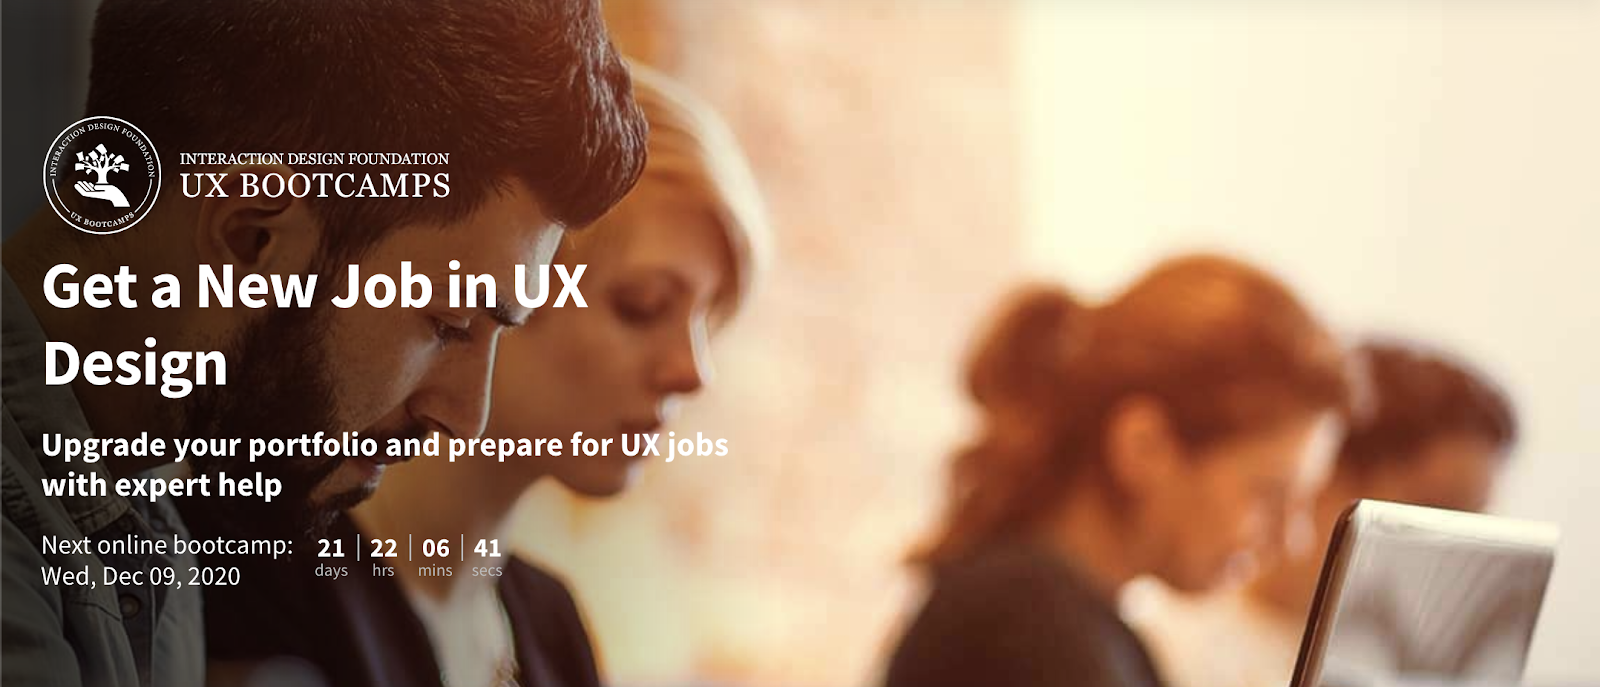 Banner for the Interaction Design Foundation's 'Get a Job in UX' bootcamp.